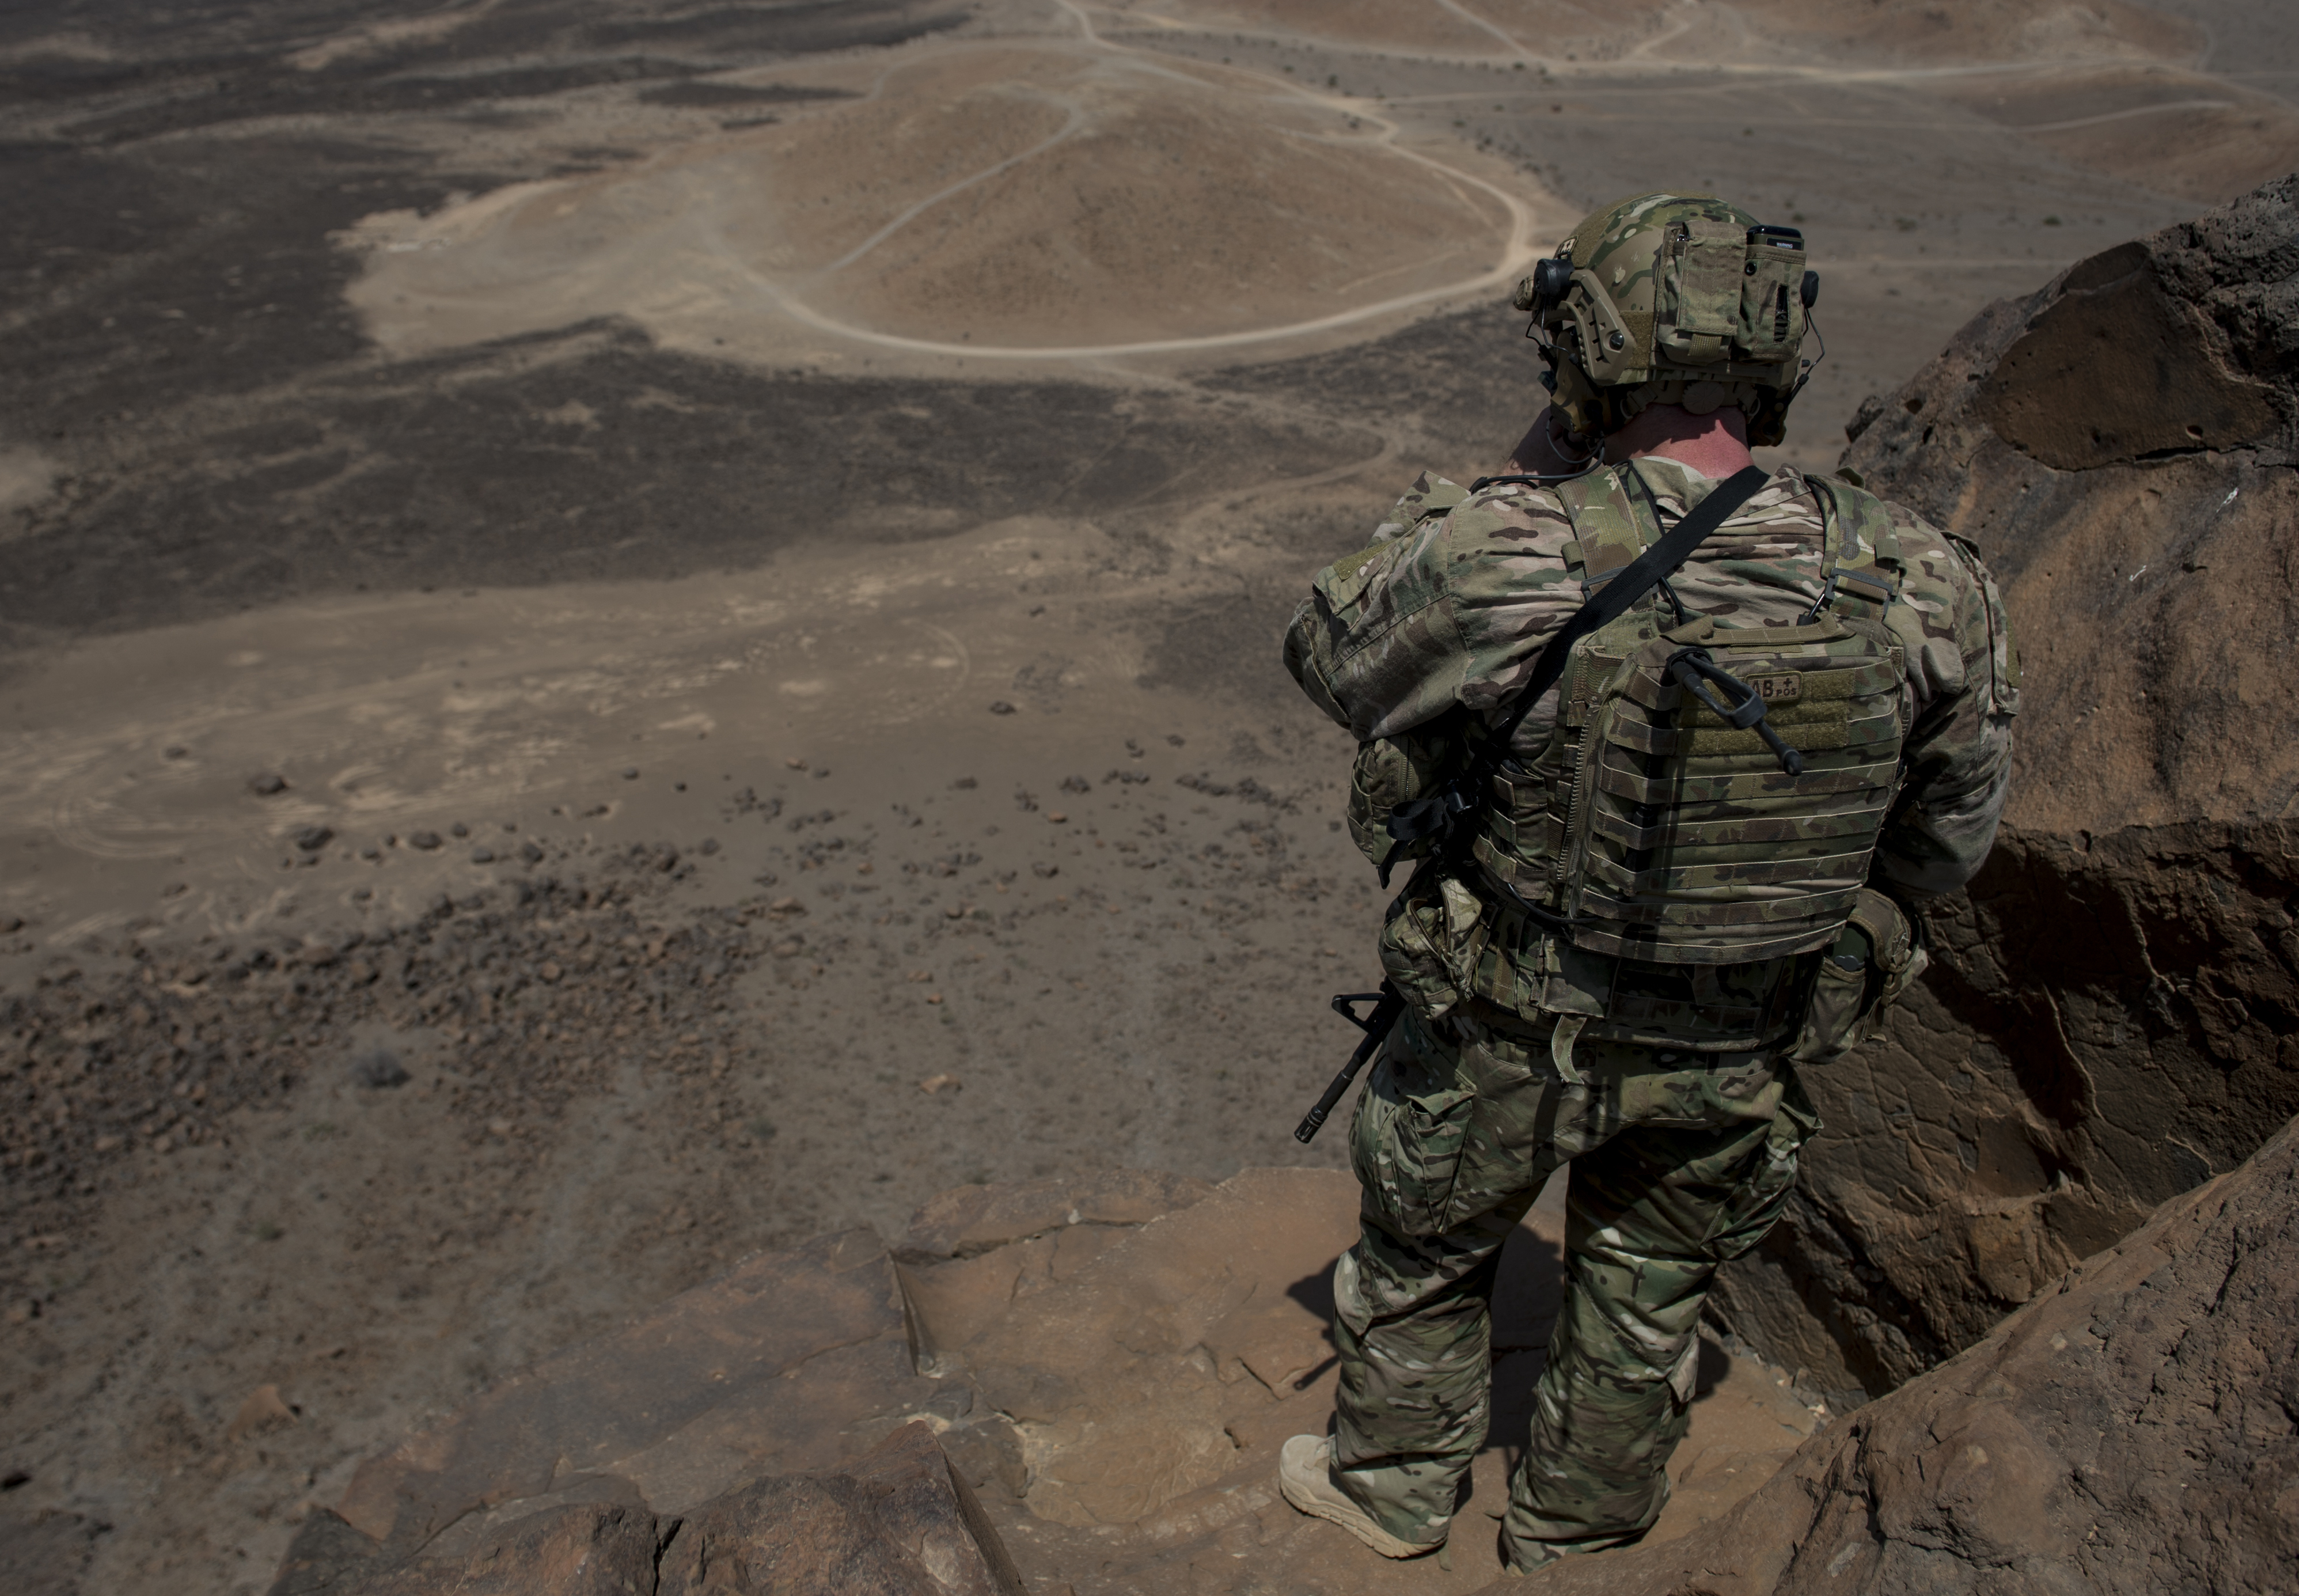 A U.S. Air Force joint terminal attack controller stands atop a cliff overlooking a mortar range Oct. 12, 2015, in Arta, Djibouti. The JTAC participation in the training added realistic joint interaction, similar to a combat environment. (U.S. Air Force photo by Senior Airman Peter Thompson/Released)